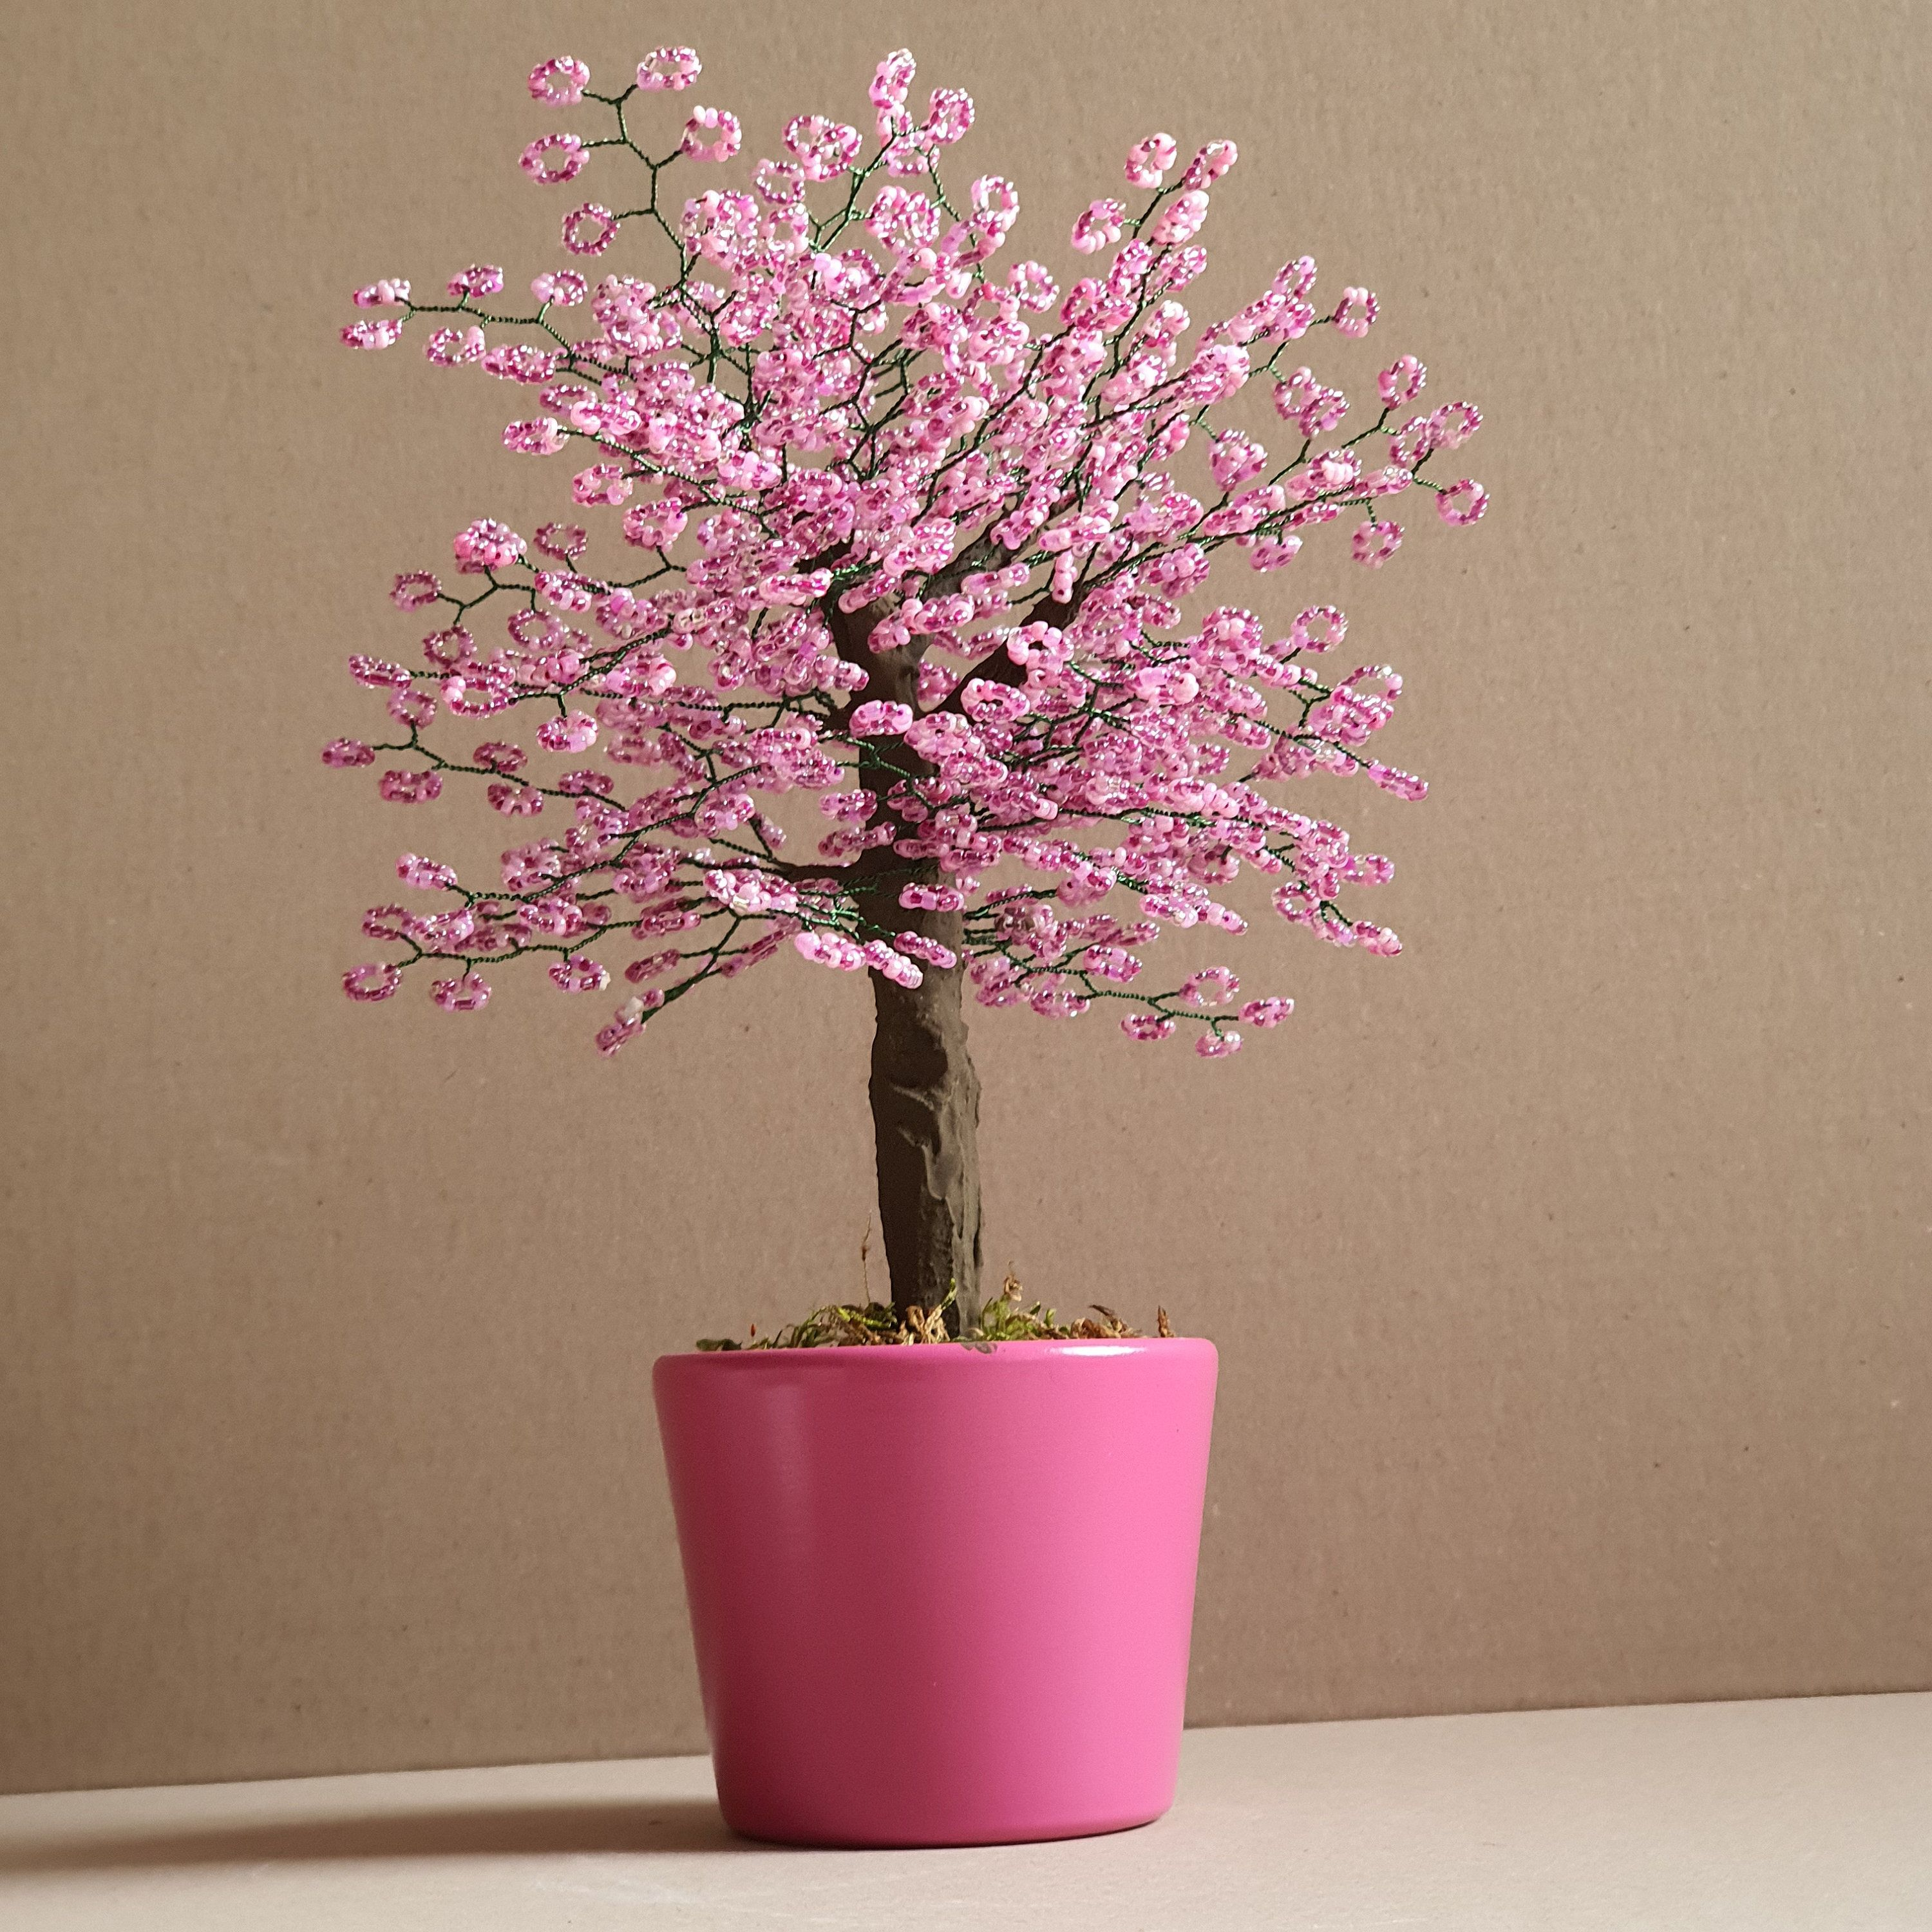 Pin By Wire Lamp Tree On My Tree Statues Cherry Blossom Tree Blossom Trees Tree Statues